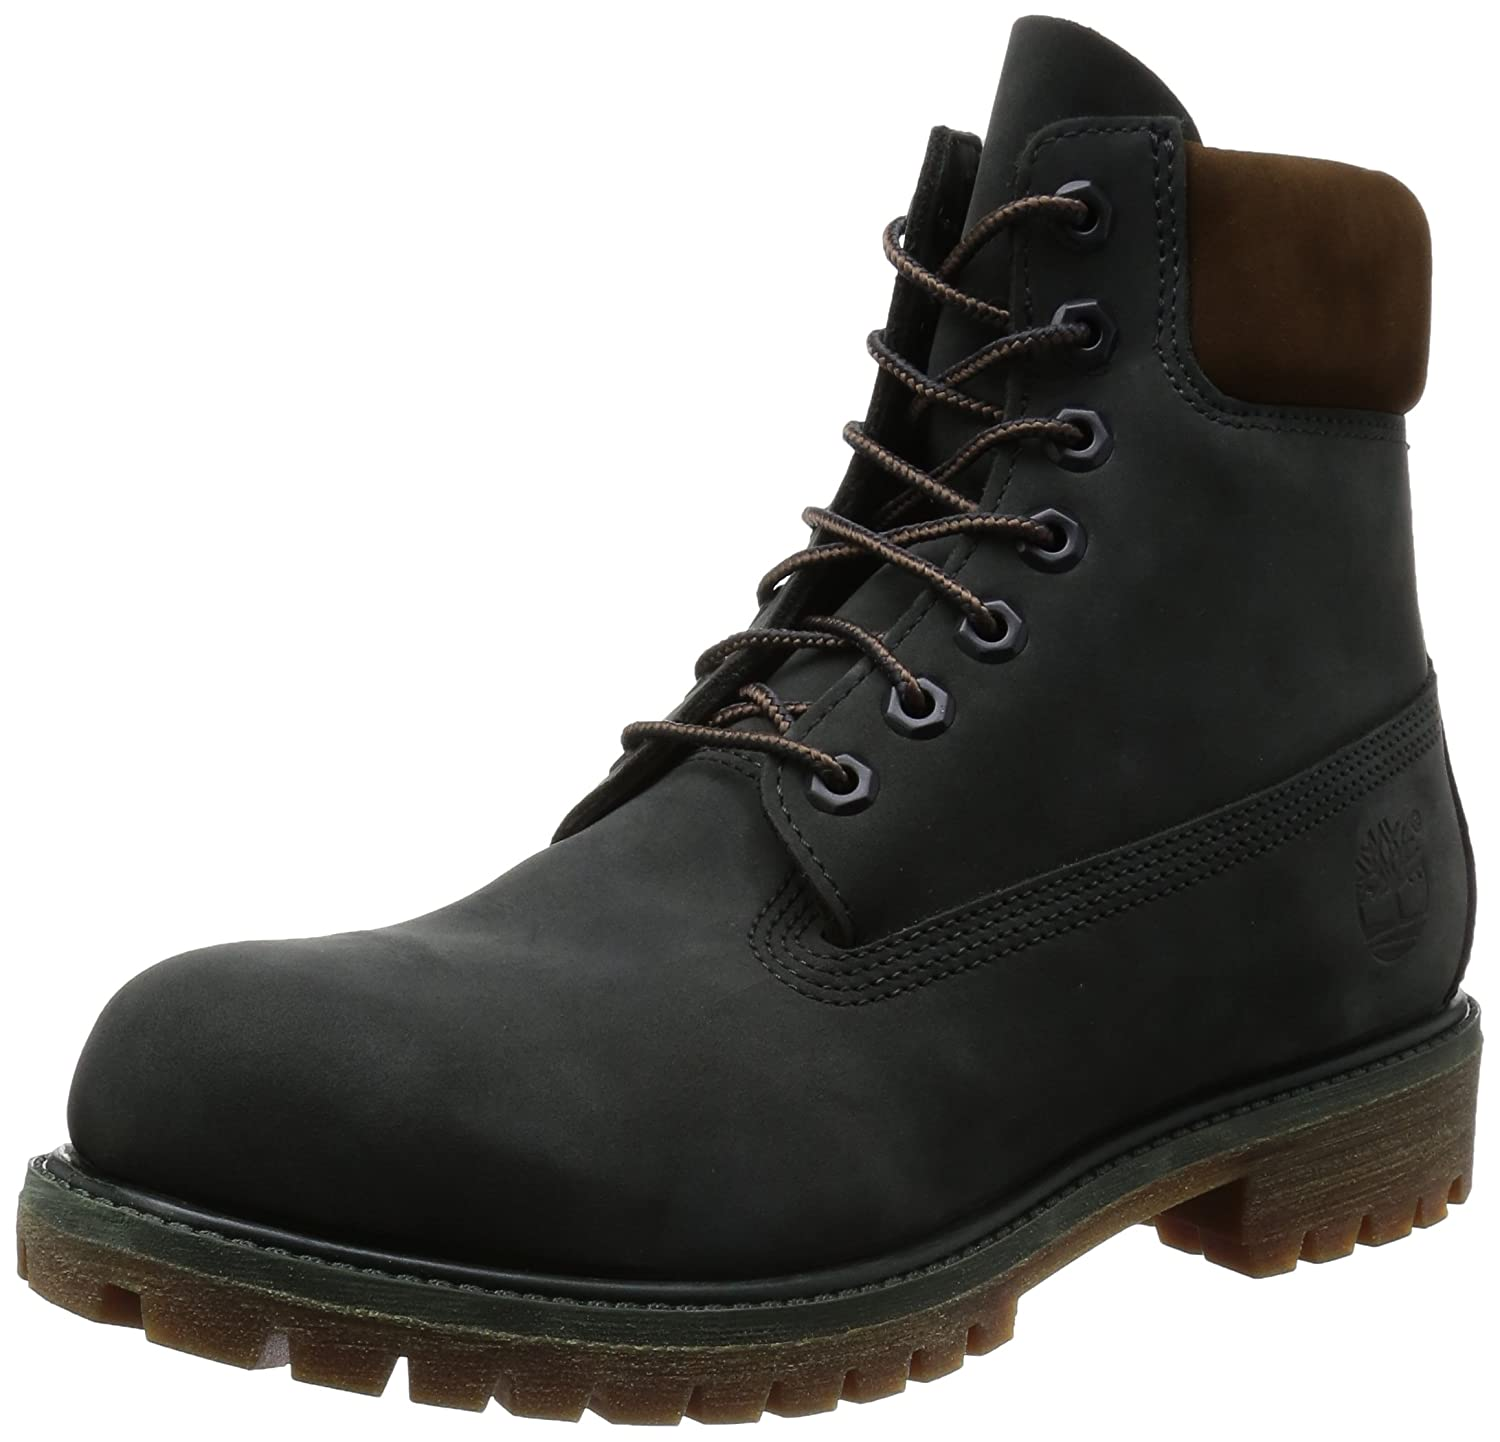 Timberland Premium, 6-inch B01MA5WQF9 Premium, Bottes Classiques Bottes Homme Gris b4fb188 - fast-weightloss-diet.space